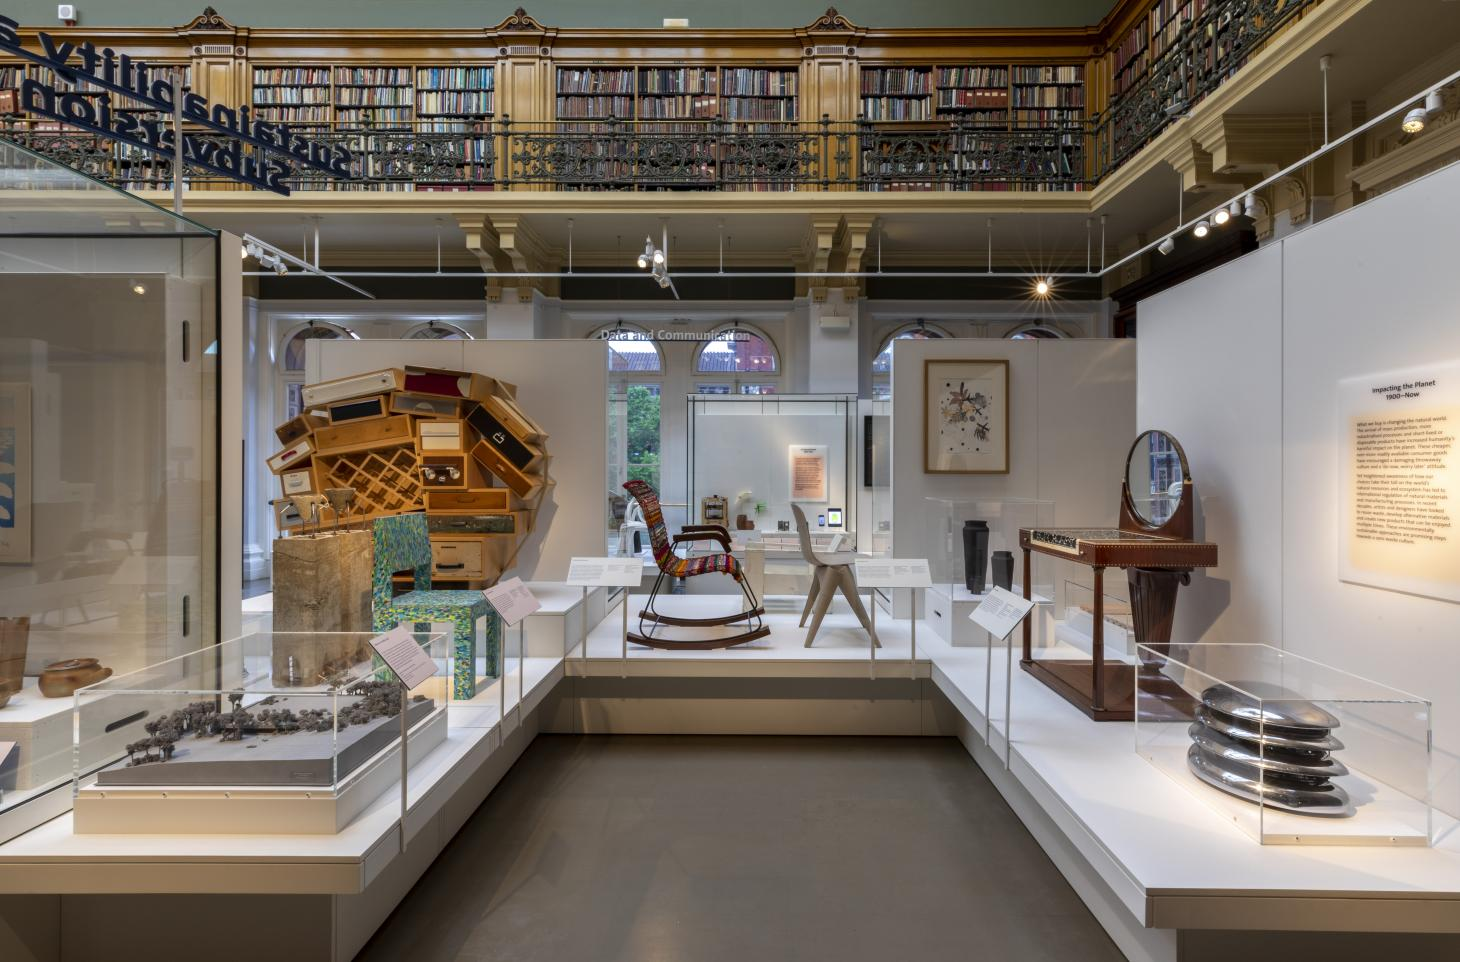 A display of furniture on plinths, shown inside the Victoria & Albert Museum library